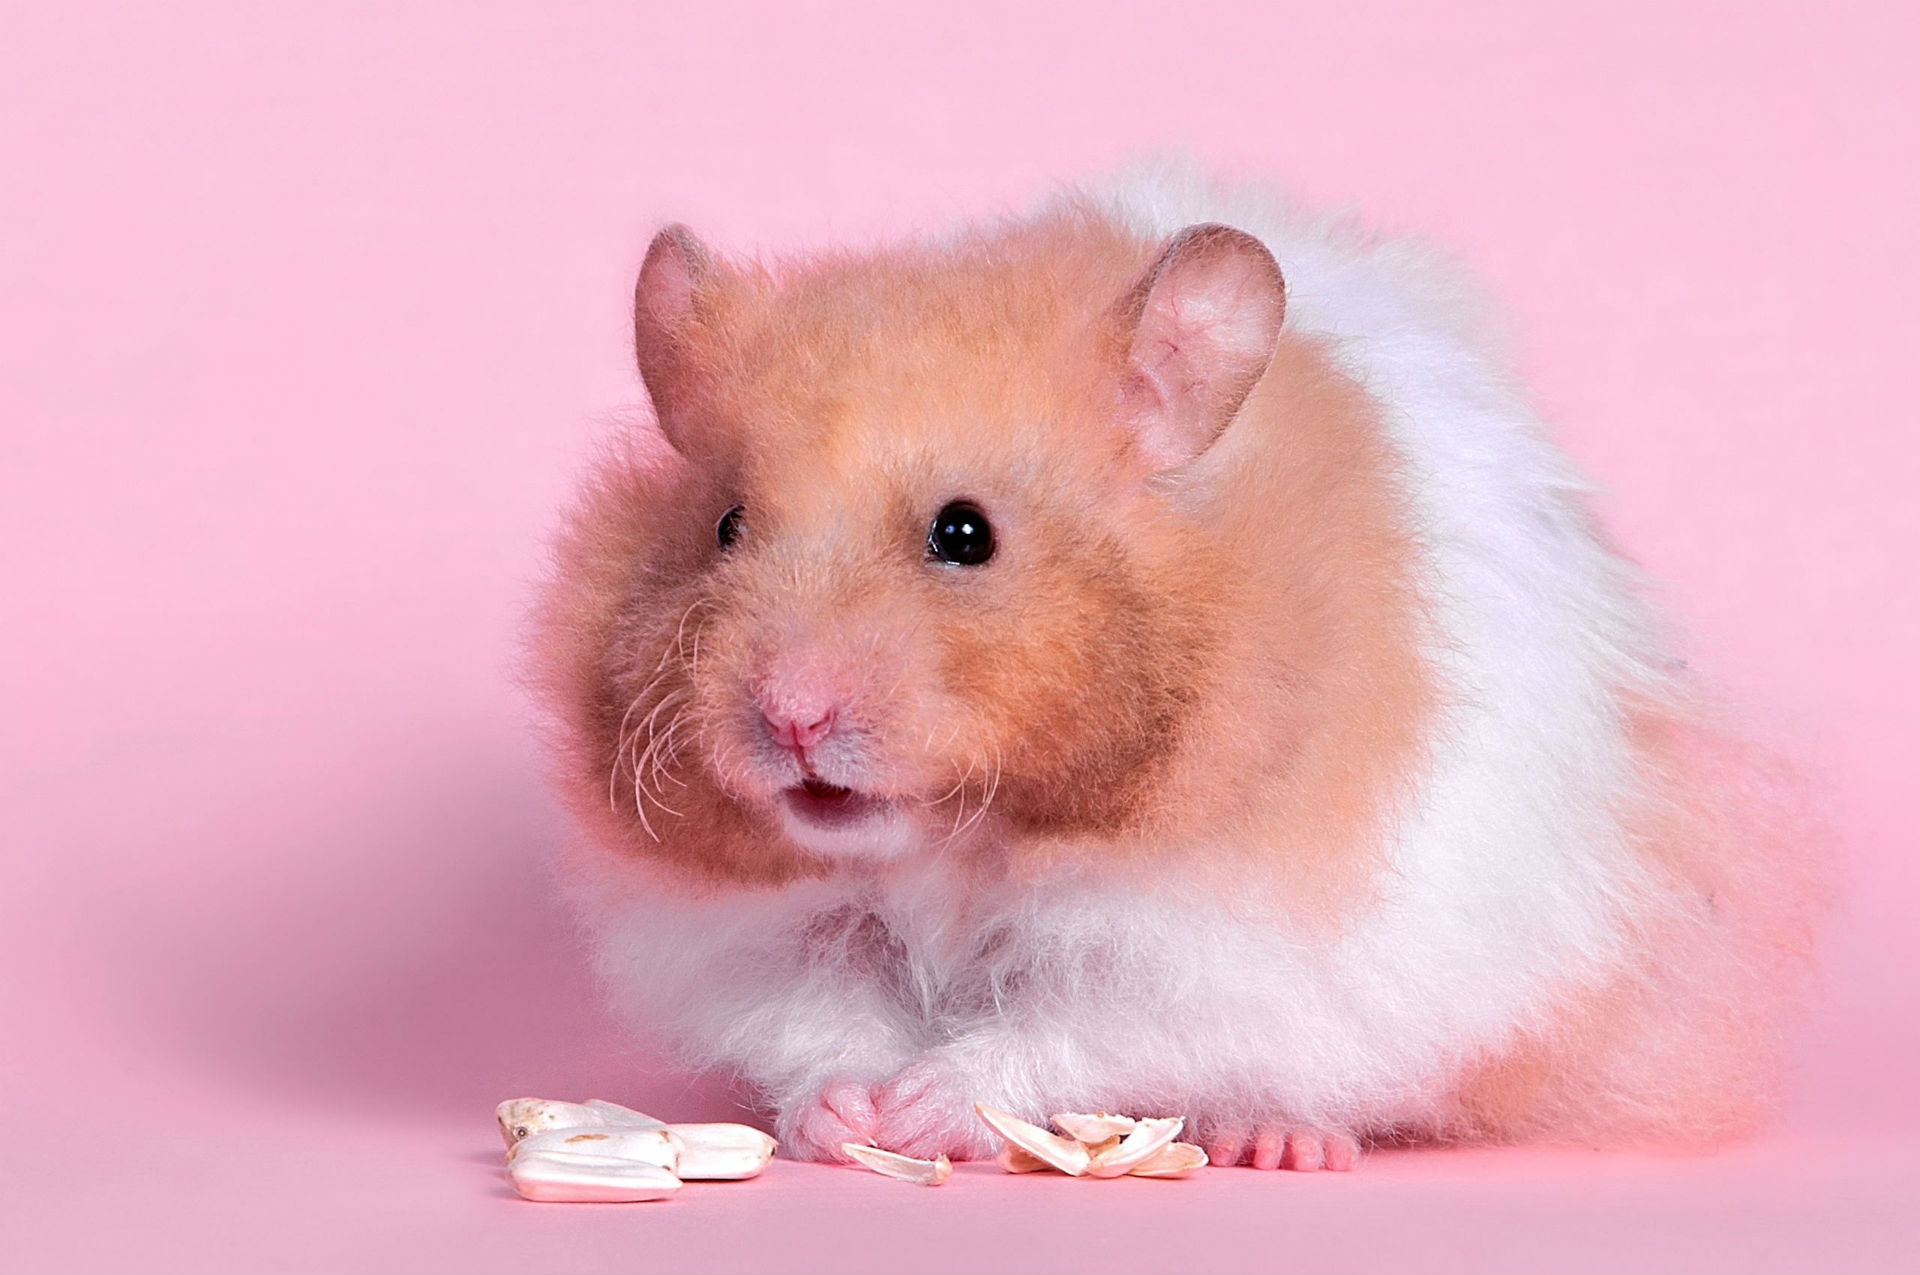 Cute Hamster Background Wallpapers 20000   Baltana 1920x1275